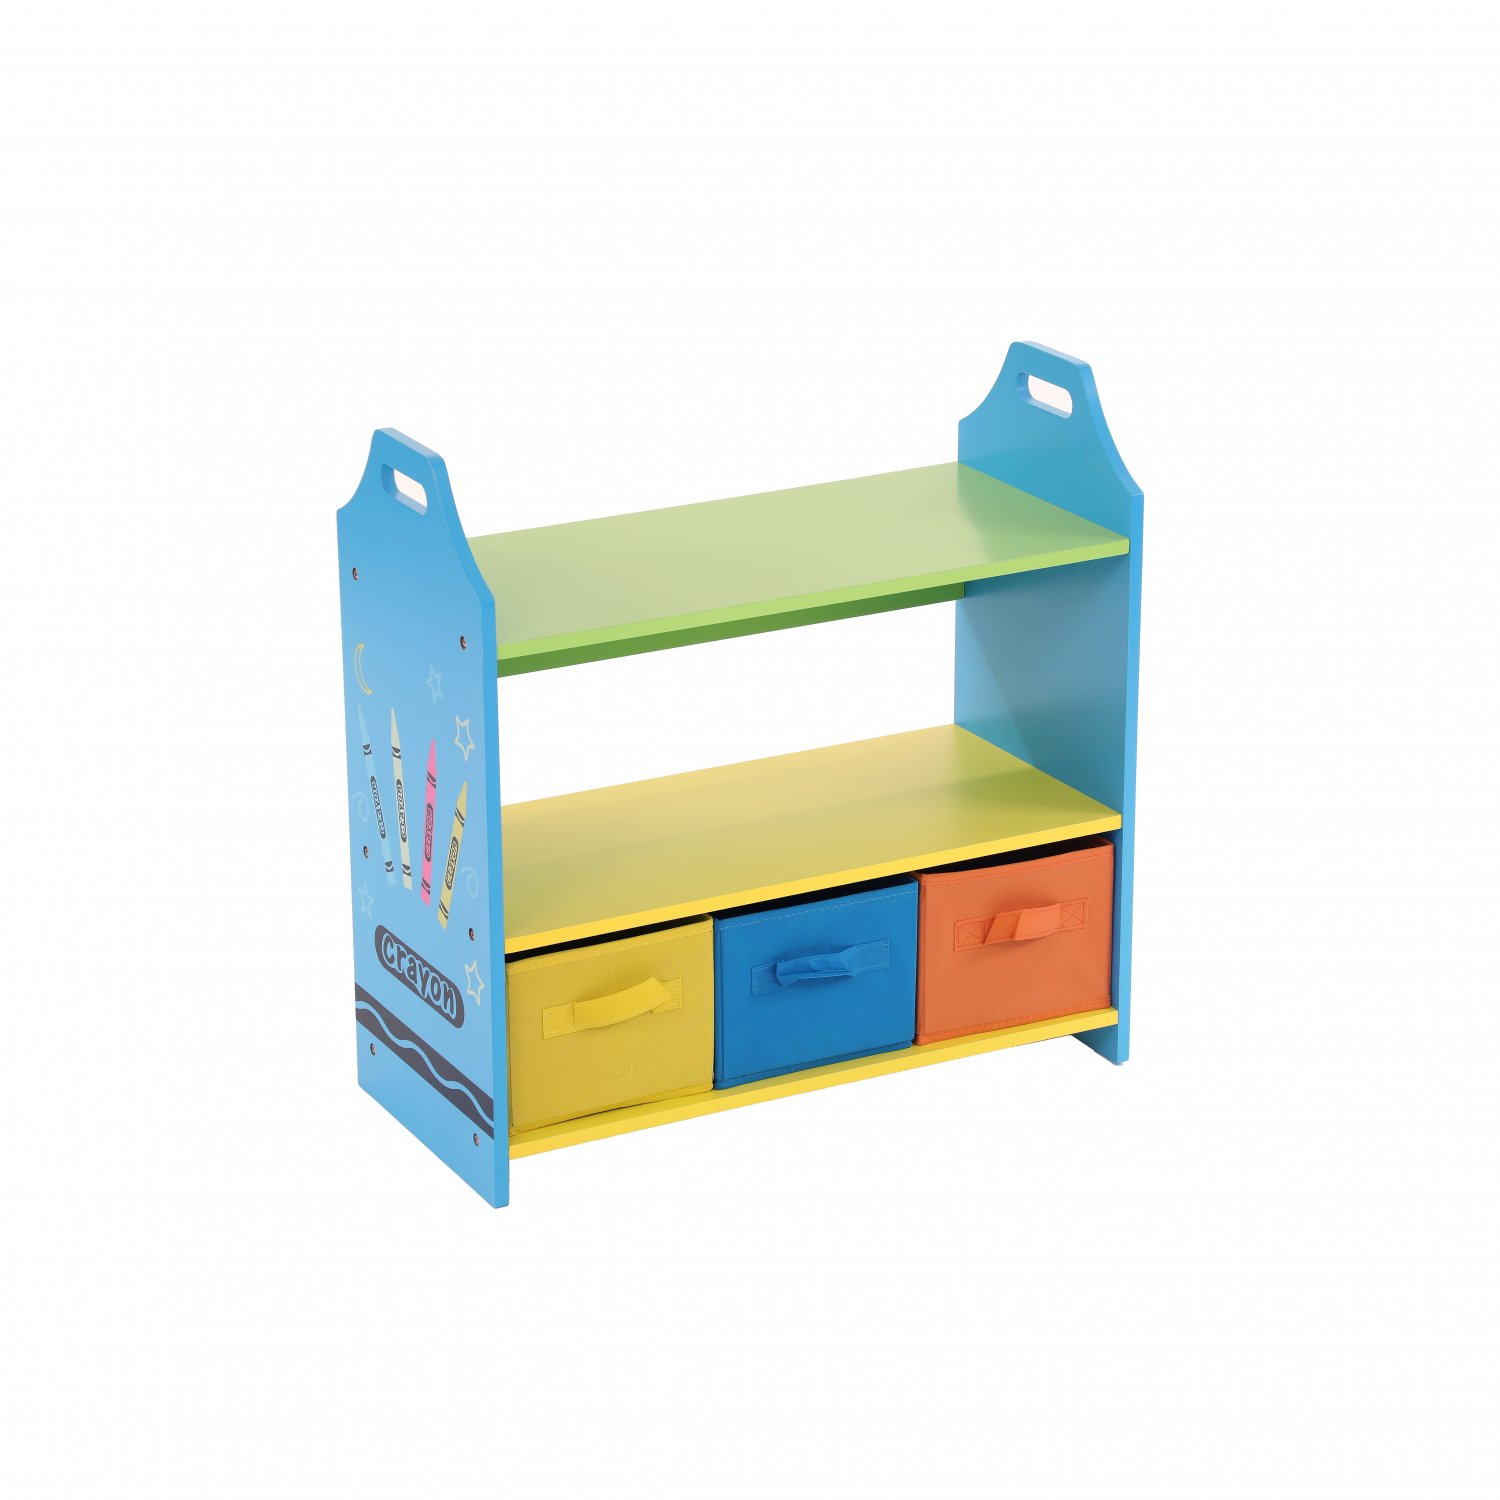 Colourful Childrens Toy Storage Crayon Unit Shelves With 3 Drawers 27 99 Oypla Stocking The Very Best In Toys Electrical Furniture Homeware Garden Gifts And Much More